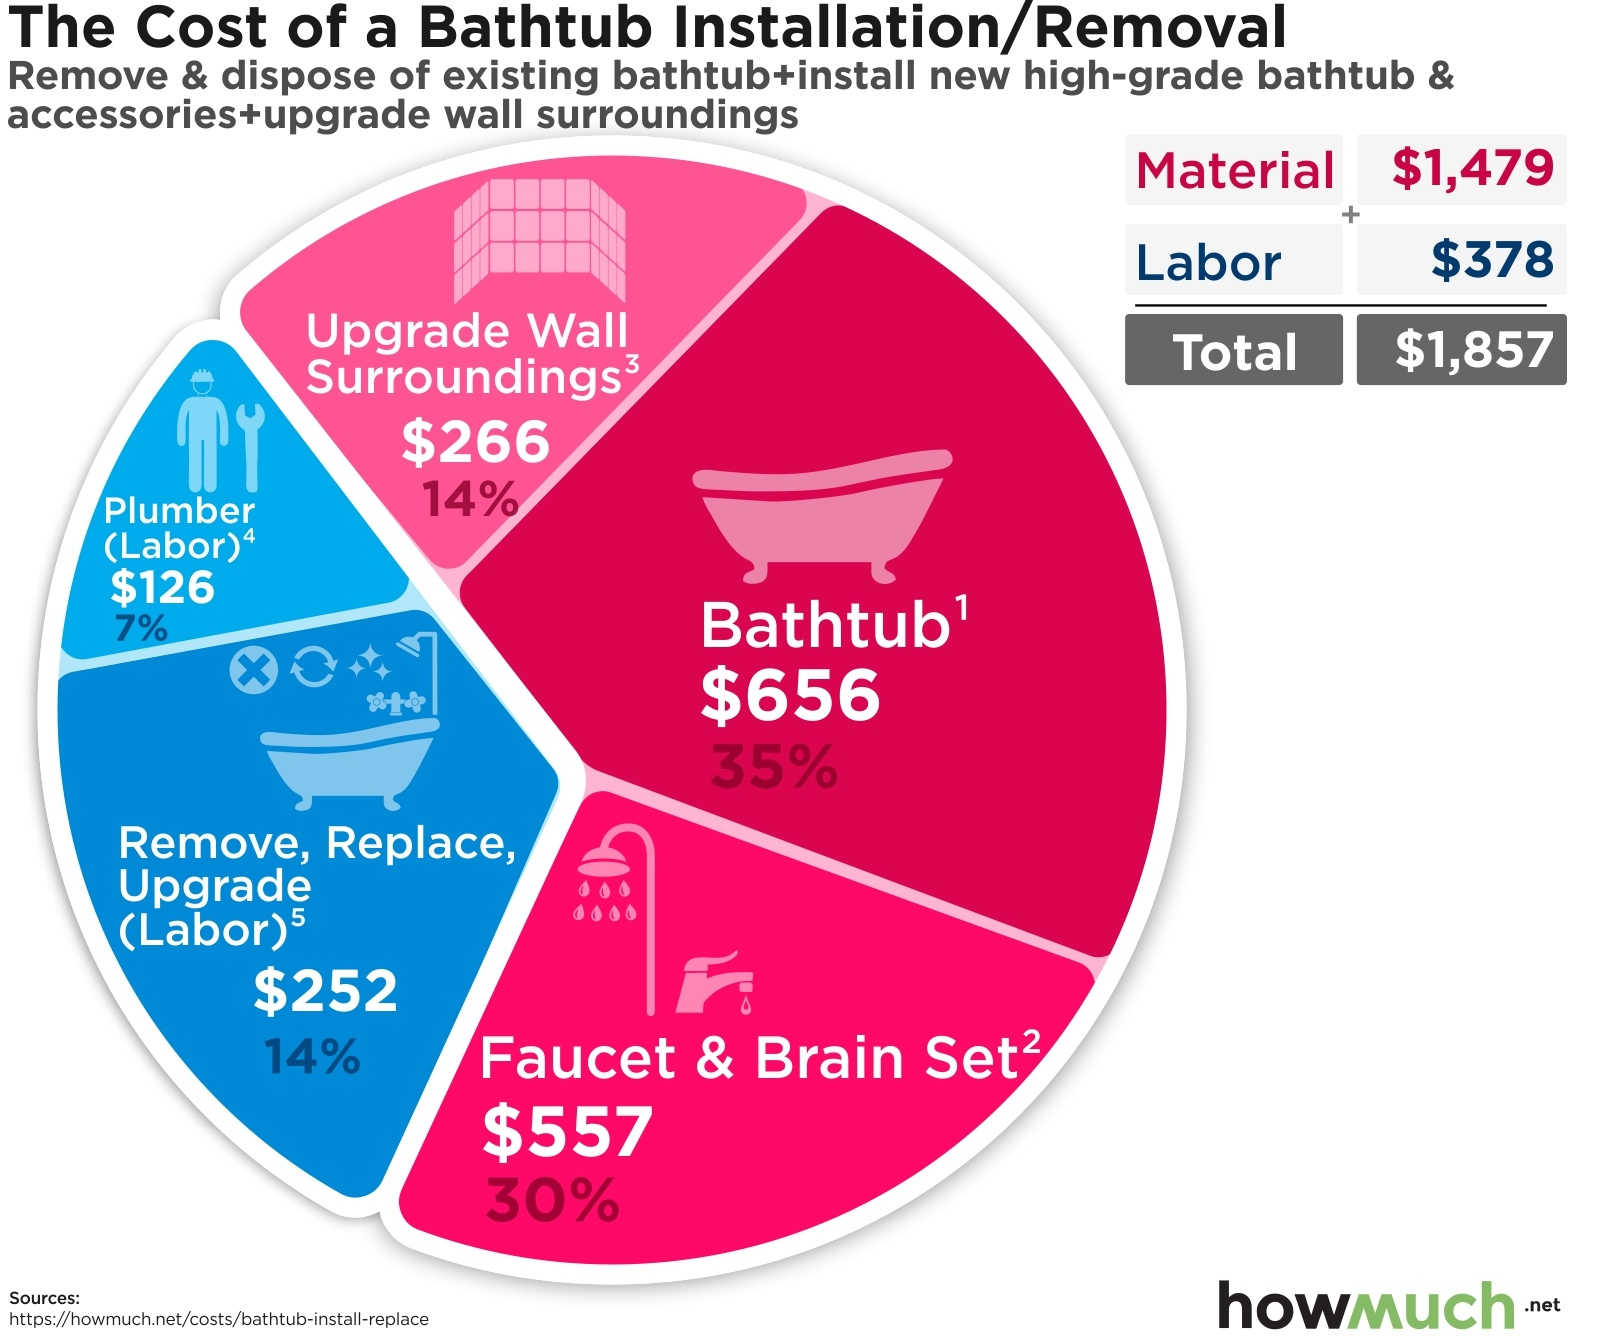 The Cost of a Bathtub Installation/Removal